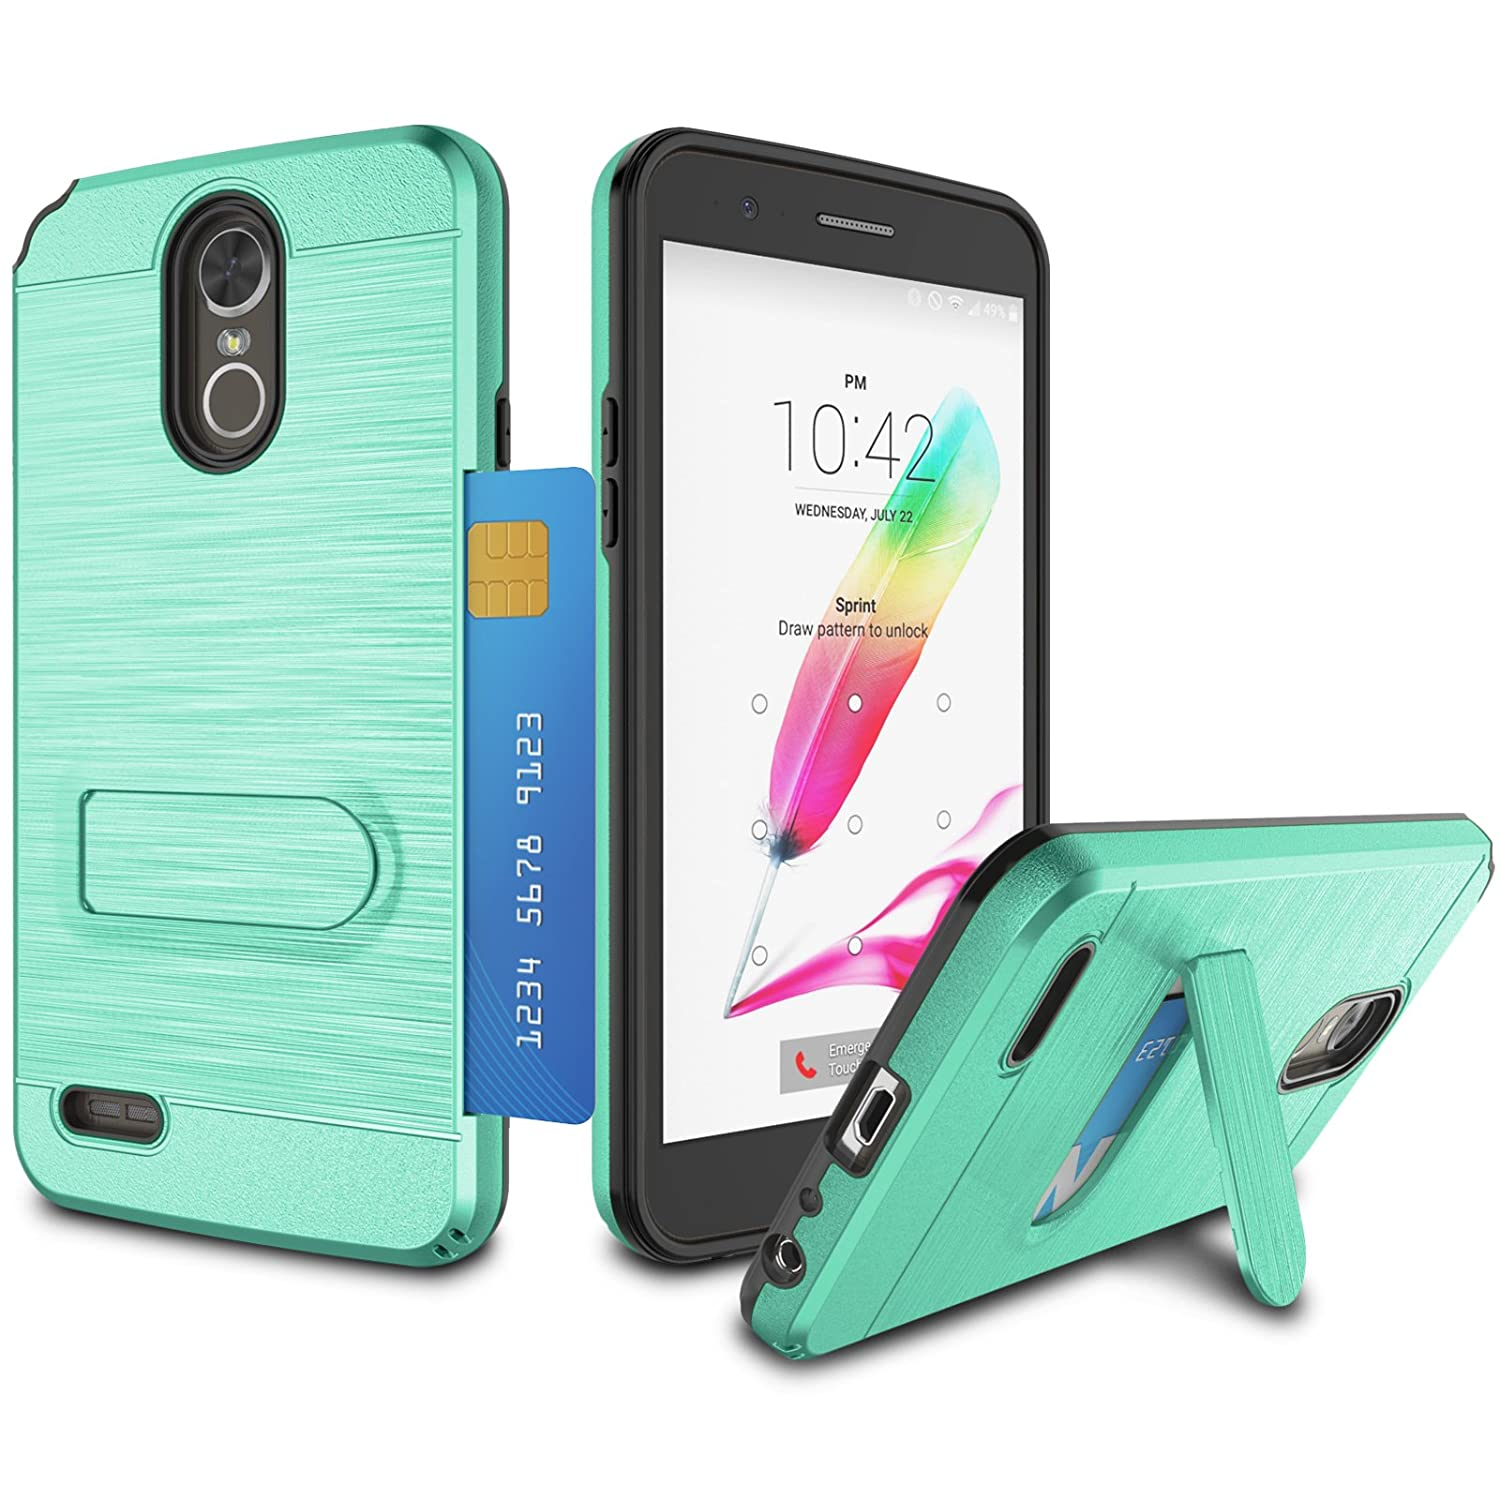 LG Stylo 3 Case, LG Stylo 3 Plus Case, Jeylly Card Solt Holder with  Kickstand Hybrid Dual Layer Hard Plastic + Soft TPU Drop Protection Case  Cover for